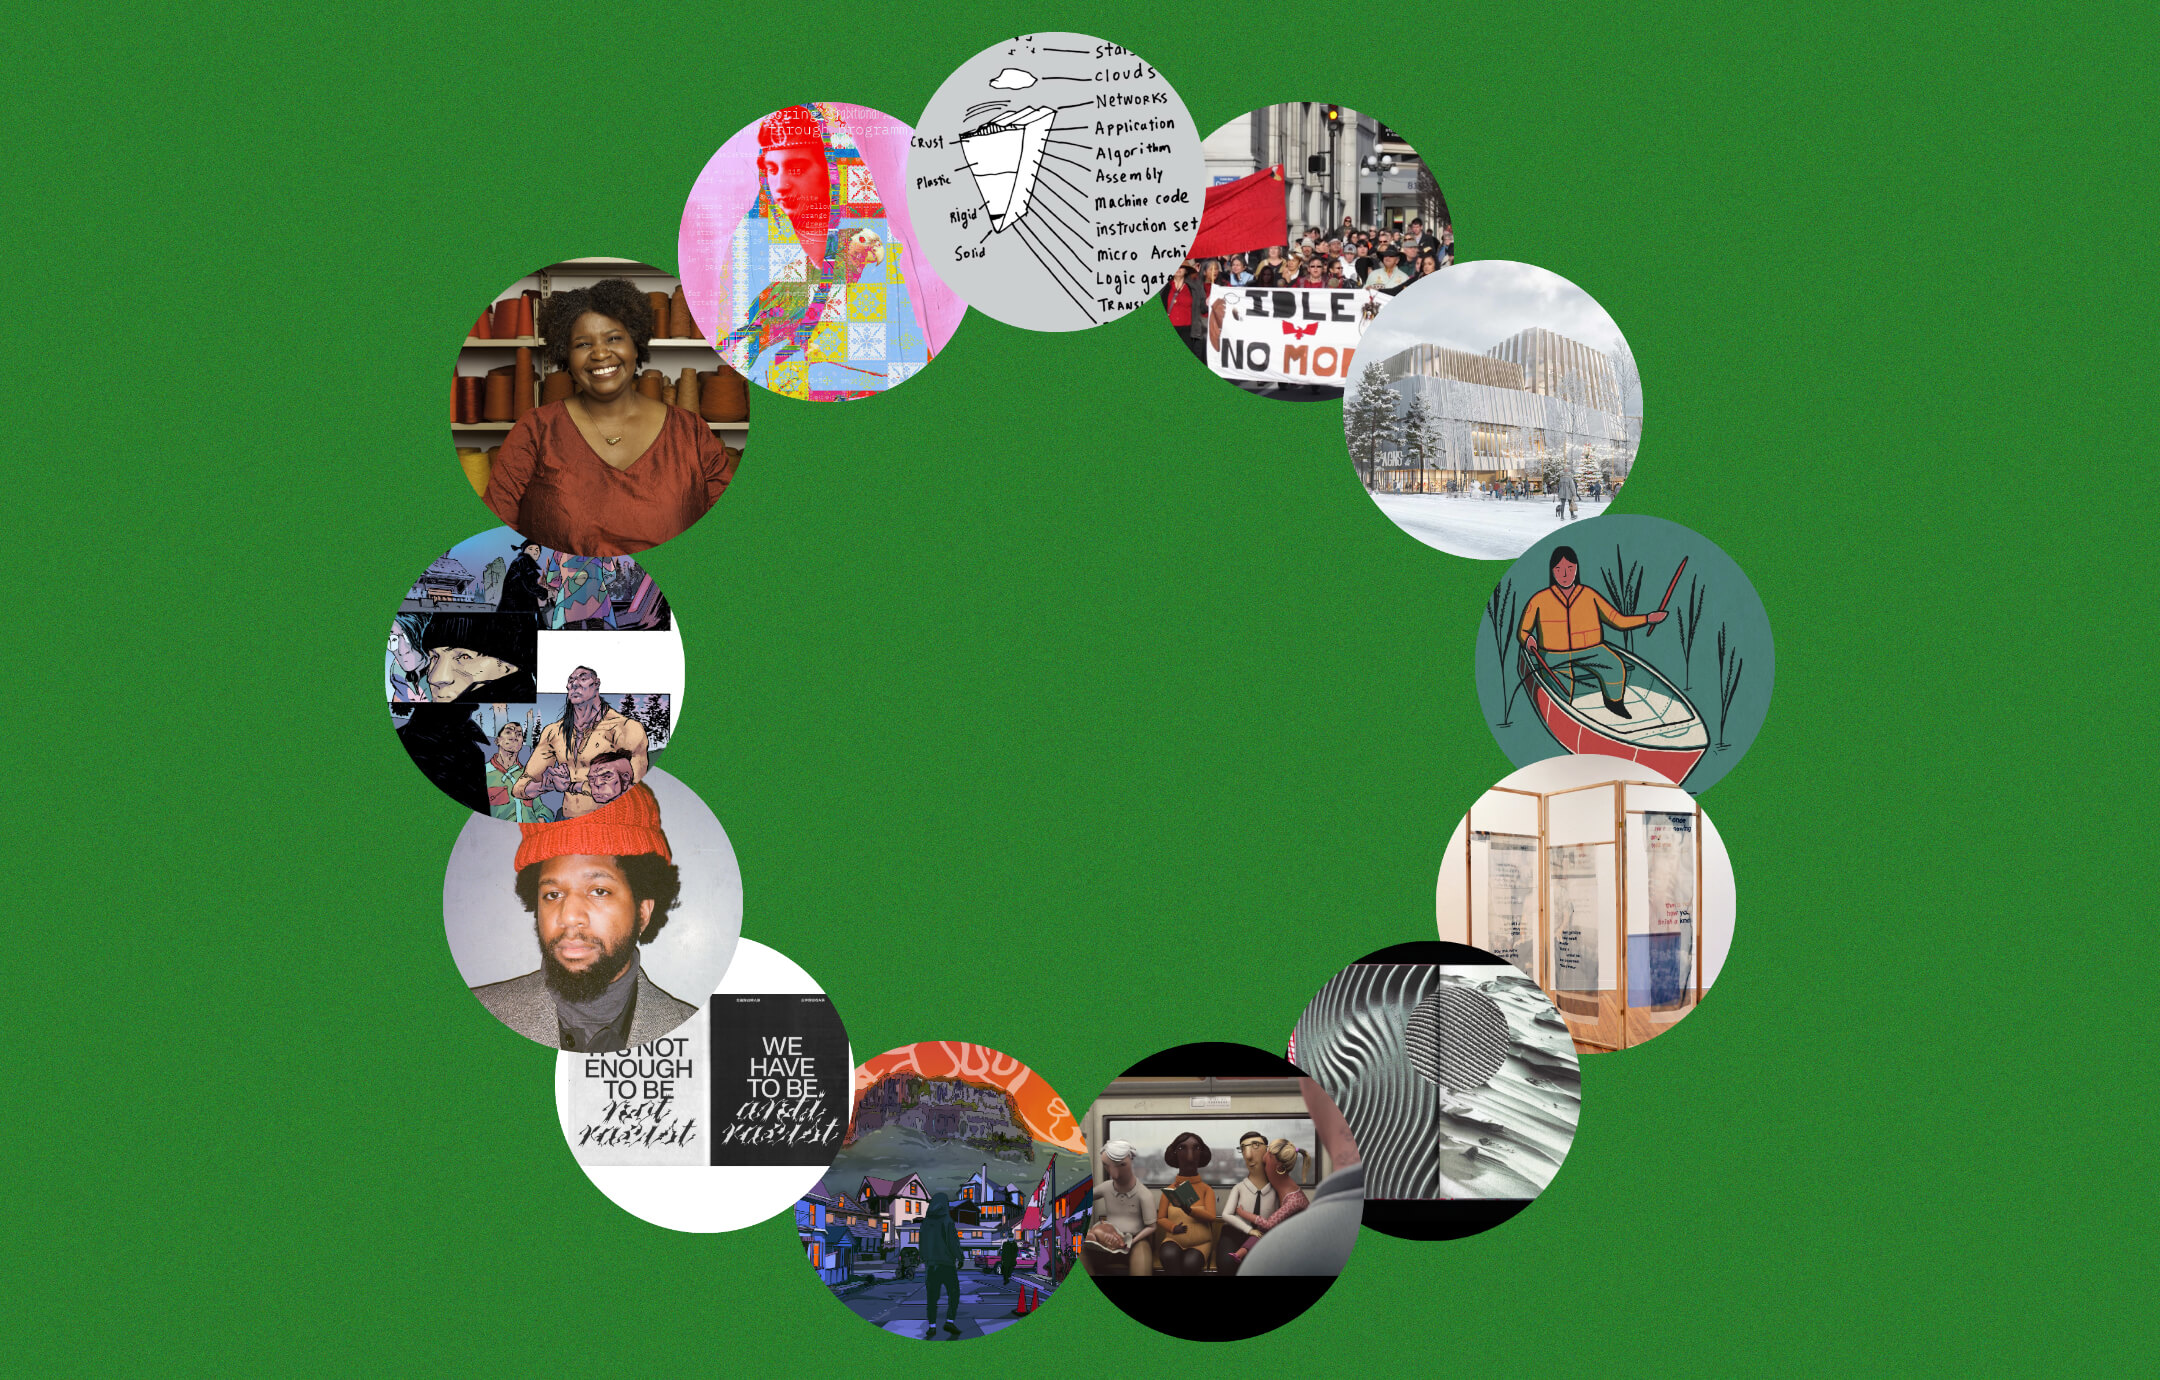 A wreath made of circular cutouts from other images, on a green background